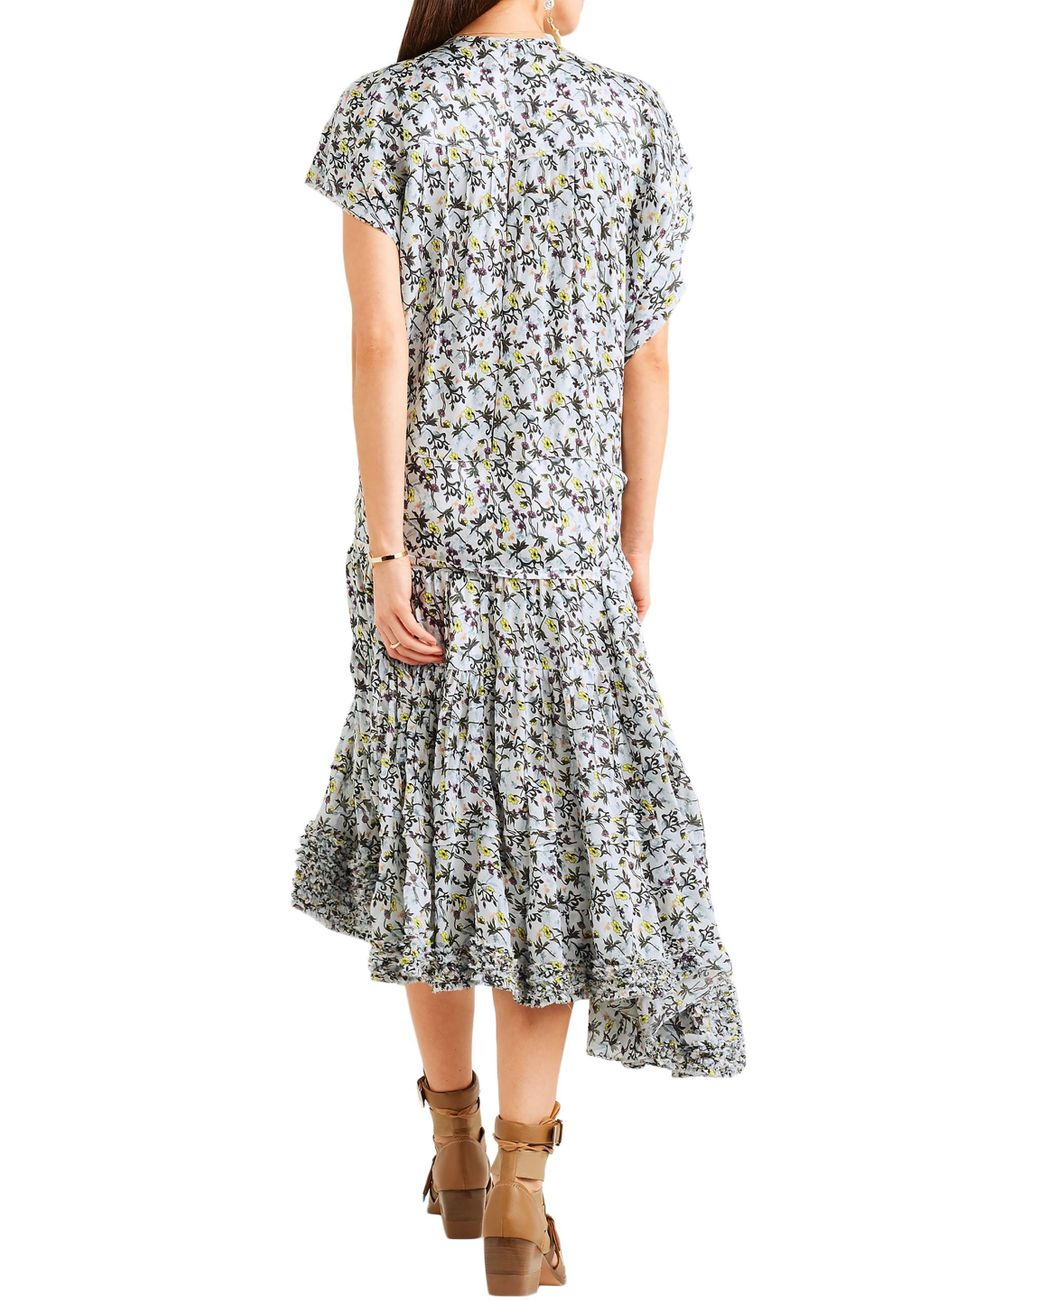 Dorothy Perkins Stretchy Mid Blue Dress with Top Floaty Floral Layer Sleeveless